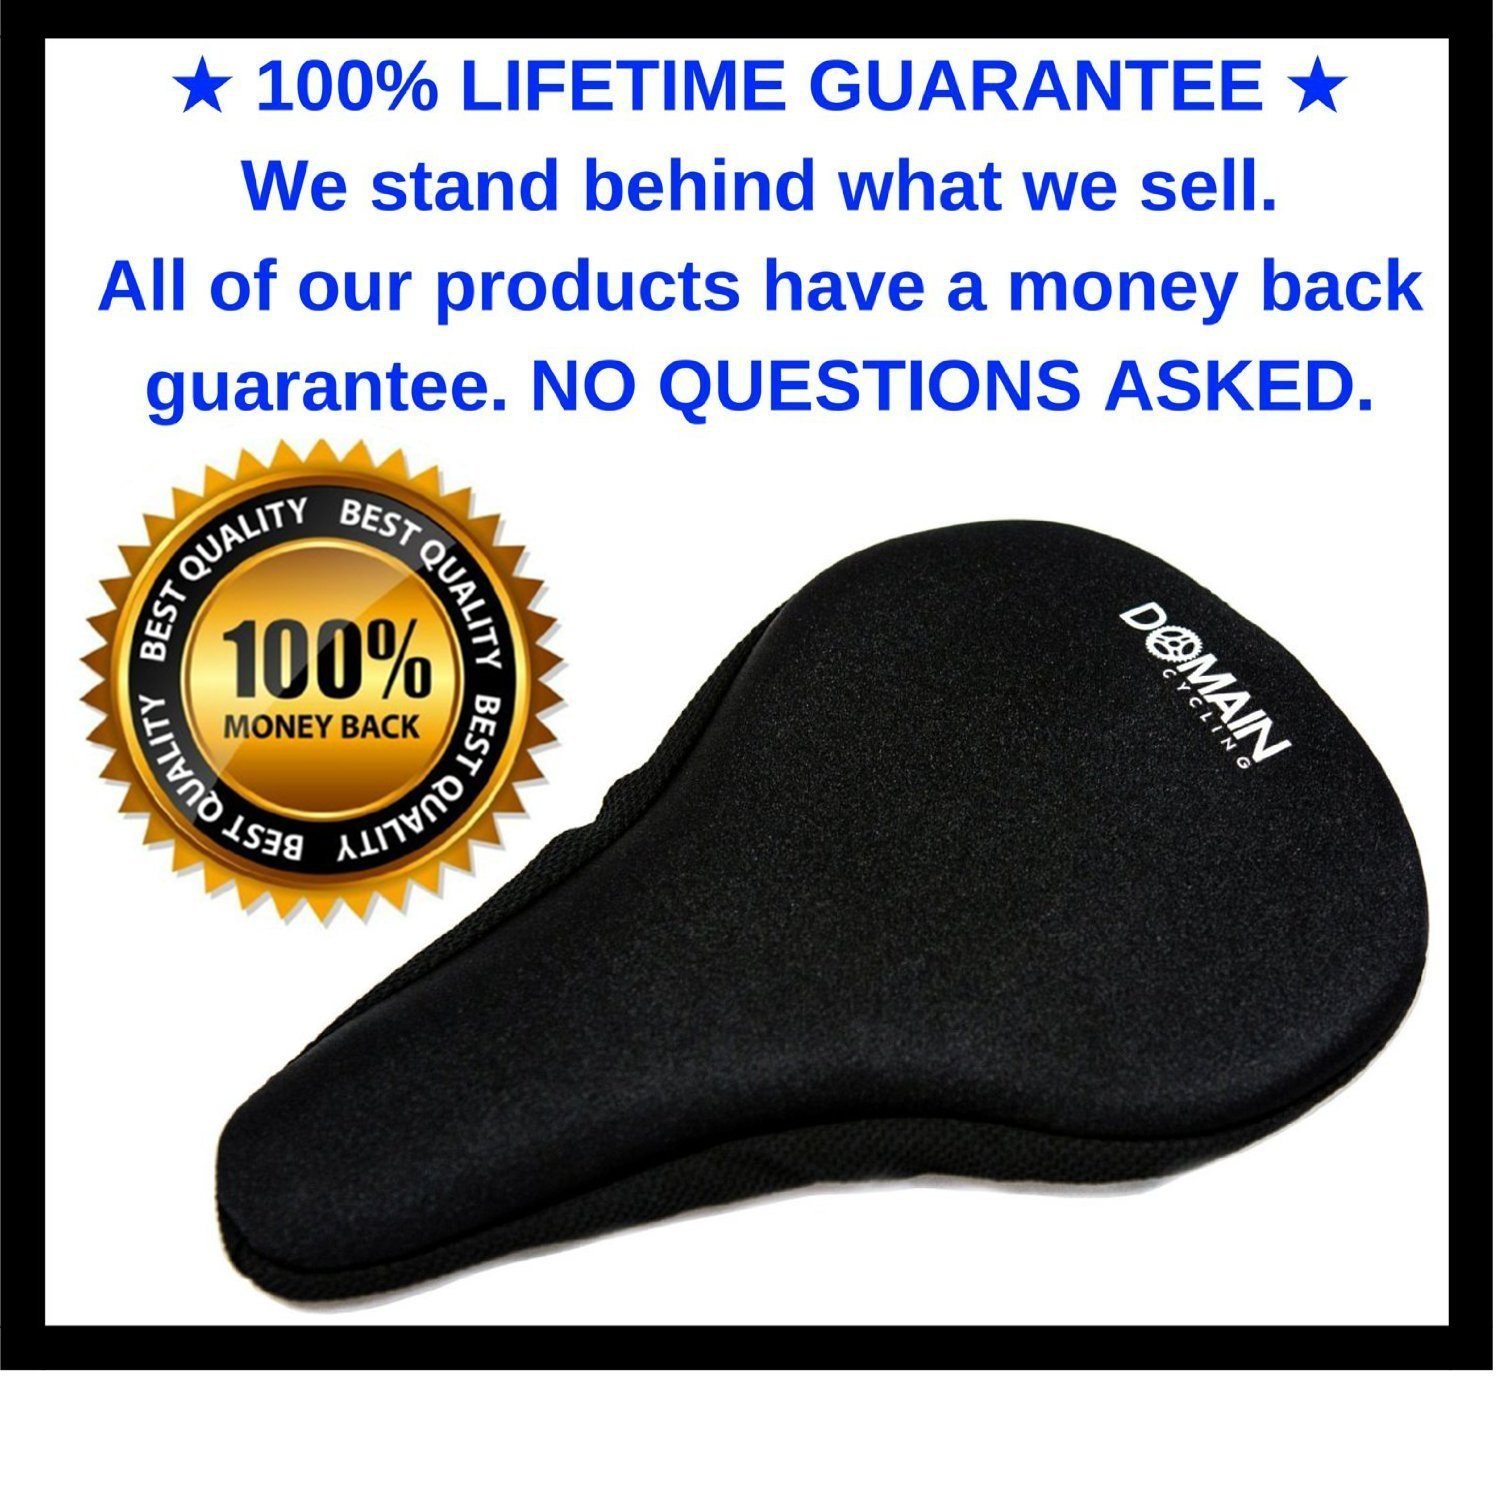 Premium Bike Gel Seat Cushion Cover 10.5''x7'' Domain Cycling - Most Comfortable Bicycle Saddle Pad for Spin Class or Outdoor Biking by Domain Cycling (Image #3)